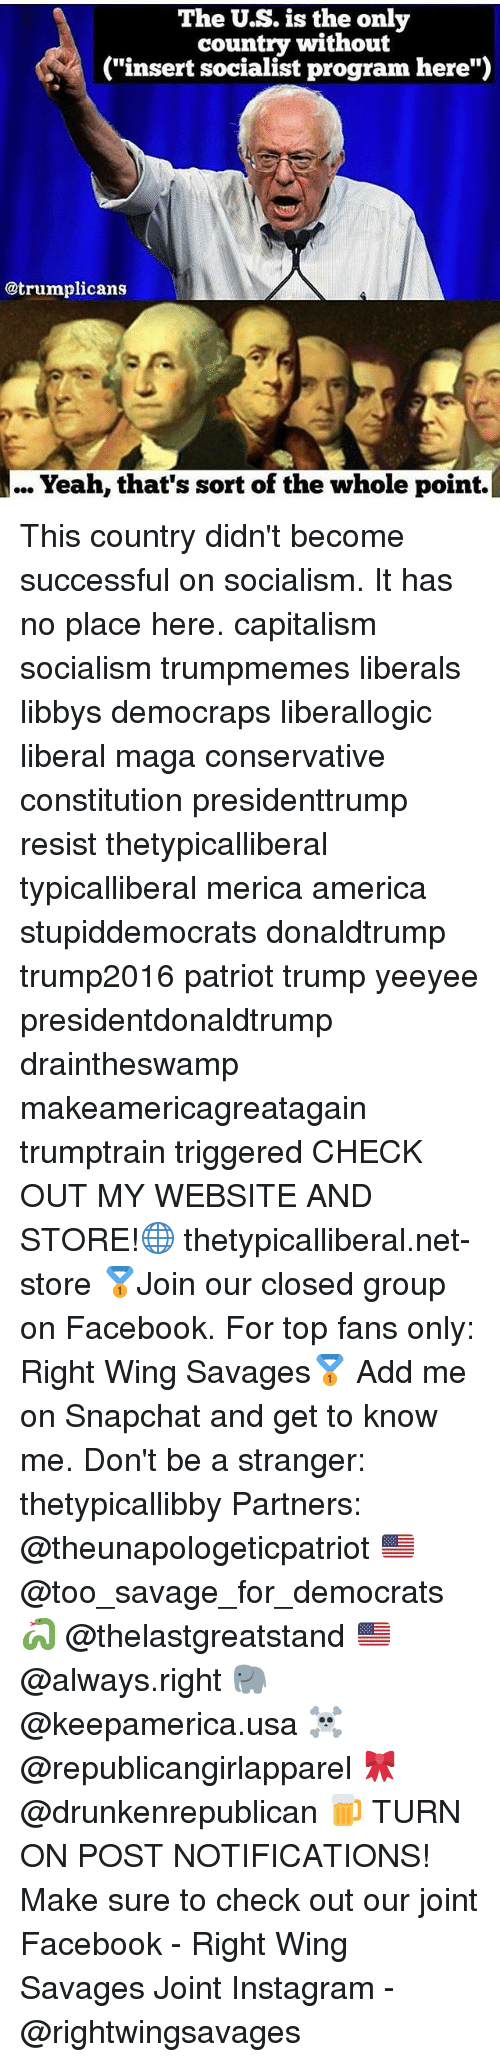 """Insertions: The U.S. is the only  country without  (""""insert socialist program here"""")  @trumplicans  Yeah, that's sort of the whole point. This country didn't become successful on socialism. It has no place here. capitalism socialism trumpmemes liberals libbys democraps liberallogic liberal maga conservative constitution presidenttrump resist thetypicalliberal typicalliberal merica america stupiddemocrats donaldtrump trump2016 patriot trump yeeyee presidentdonaldtrump draintheswamp makeamericagreatagain trumptrain triggered CHECK OUT MY WEBSITE AND STORE!🌐 thetypicalliberal.net-store 🥇Join our closed group on Facebook. For top fans only: Right Wing Savages🥇 Add me on Snapchat and get to know me. Don't be a stranger: thetypicallibby Partners: @theunapologeticpatriot 🇺🇸 @too_savage_for_democrats 🐍 @thelastgreatstand 🇺🇸 @always.right 🐘 @keepamerica.usa ☠️ @republicangirlapparel 🎀 @drunkenrepublican 🍺 TURN ON POST NOTIFICATIONS! Make sure to check out our joint Facebook - Right Wing Savages Joint Instagram - @rightwingsavages"""